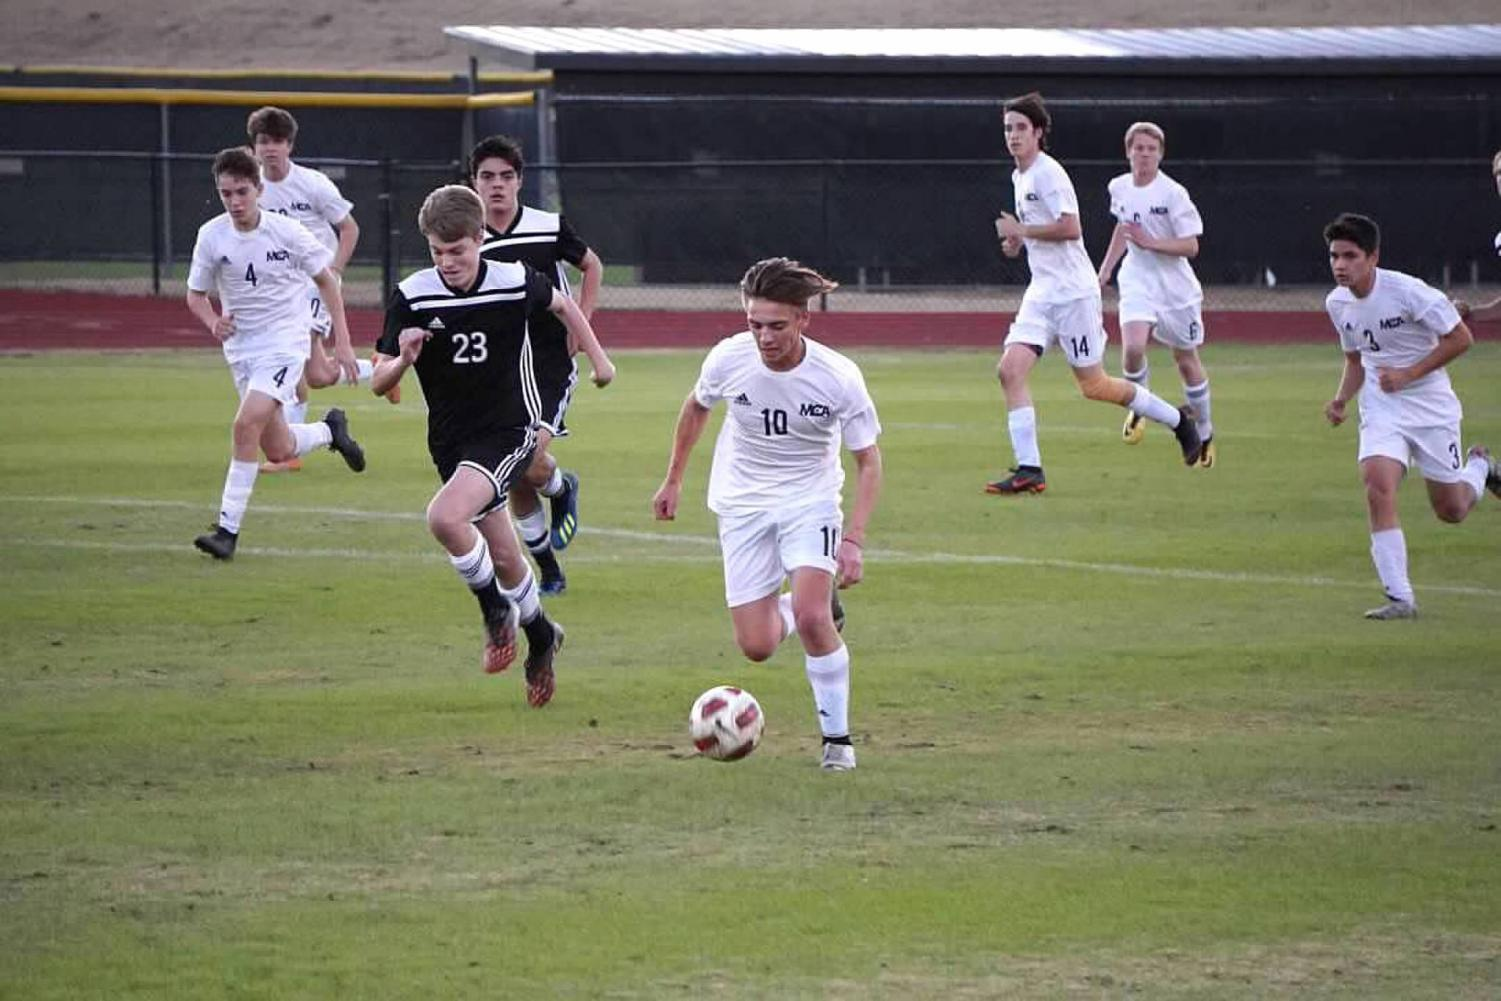 Senior Syler Gabel picks the ball off from a bad pass from the opposing team. Most games with the Mustangs are a constant back and forth struggle, and good midfielders like Syler prevent this from happening.